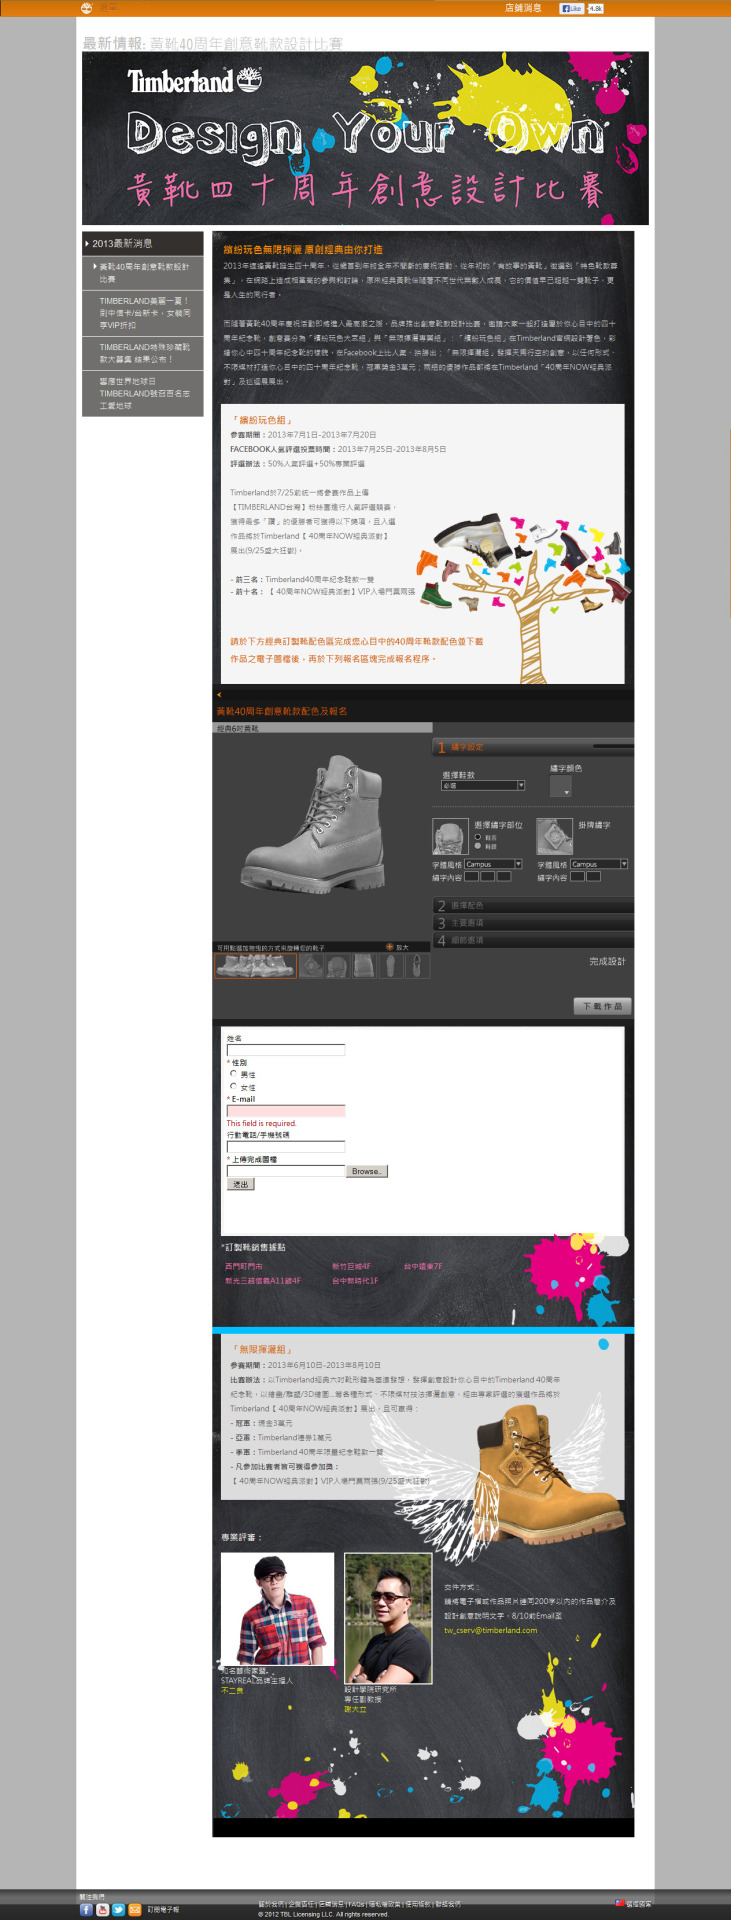 iK S' - Timberland Taiwan : Design Your Own (DYO) 活動報名頁 http://www.iks-design.com/_demo/timberland_tw/dyo/core/